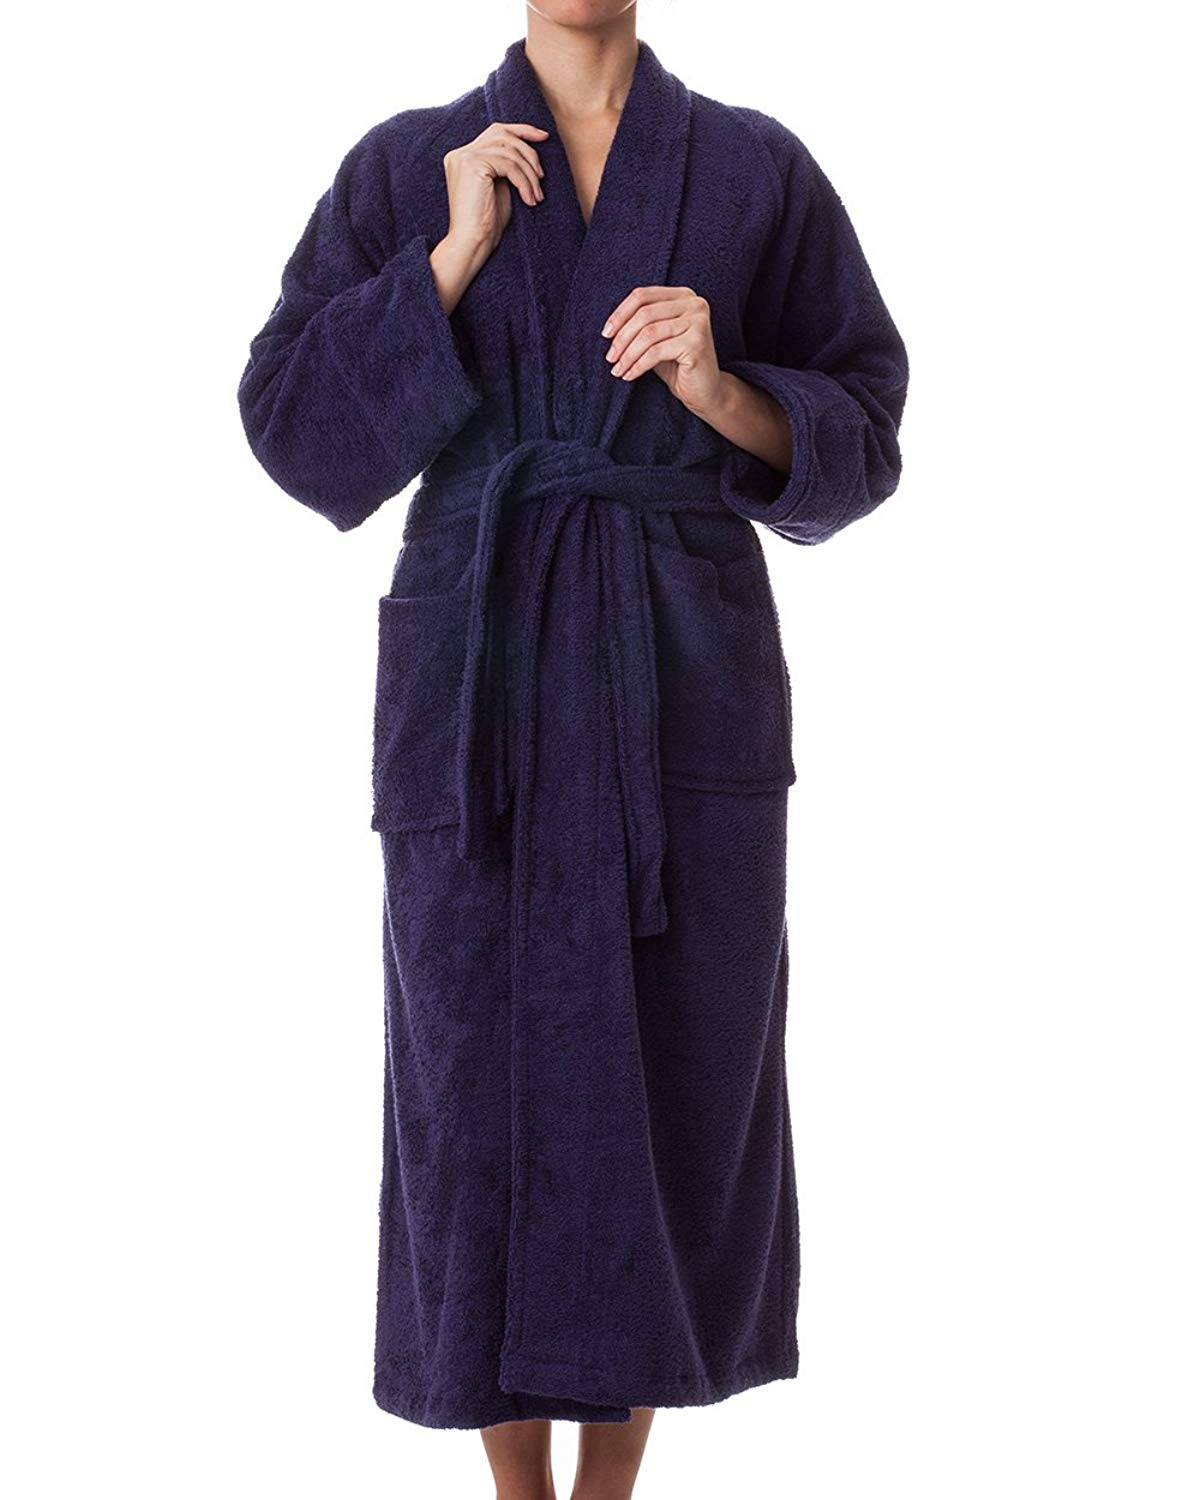 5daa1fe886 Get Quotations · eLuxurySupply Unisex Robes - 100% Long Staple Cotton  Hotel Spa Plush Robes - Classic